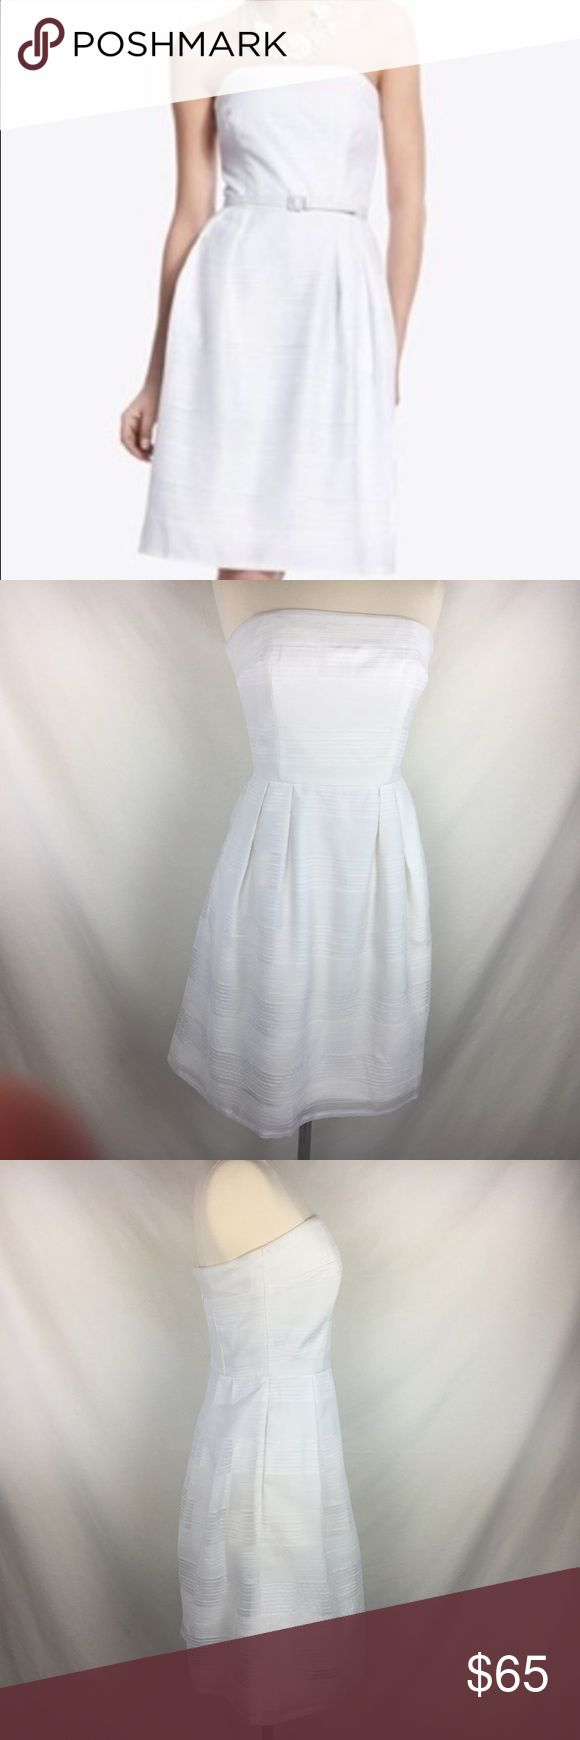 WHBM White Stripe Party Dress sz2 NWOT This dress is BNWOT, never worn. Though the sample pic shows it with a belt it never was sold with one as the description from their website states. It's darling without a belt. Or you can use any belt of any color you'd like.   Size 2. It zips all the way up but my mannequin is just a bit too big. White House Black Market Dresses Strapless